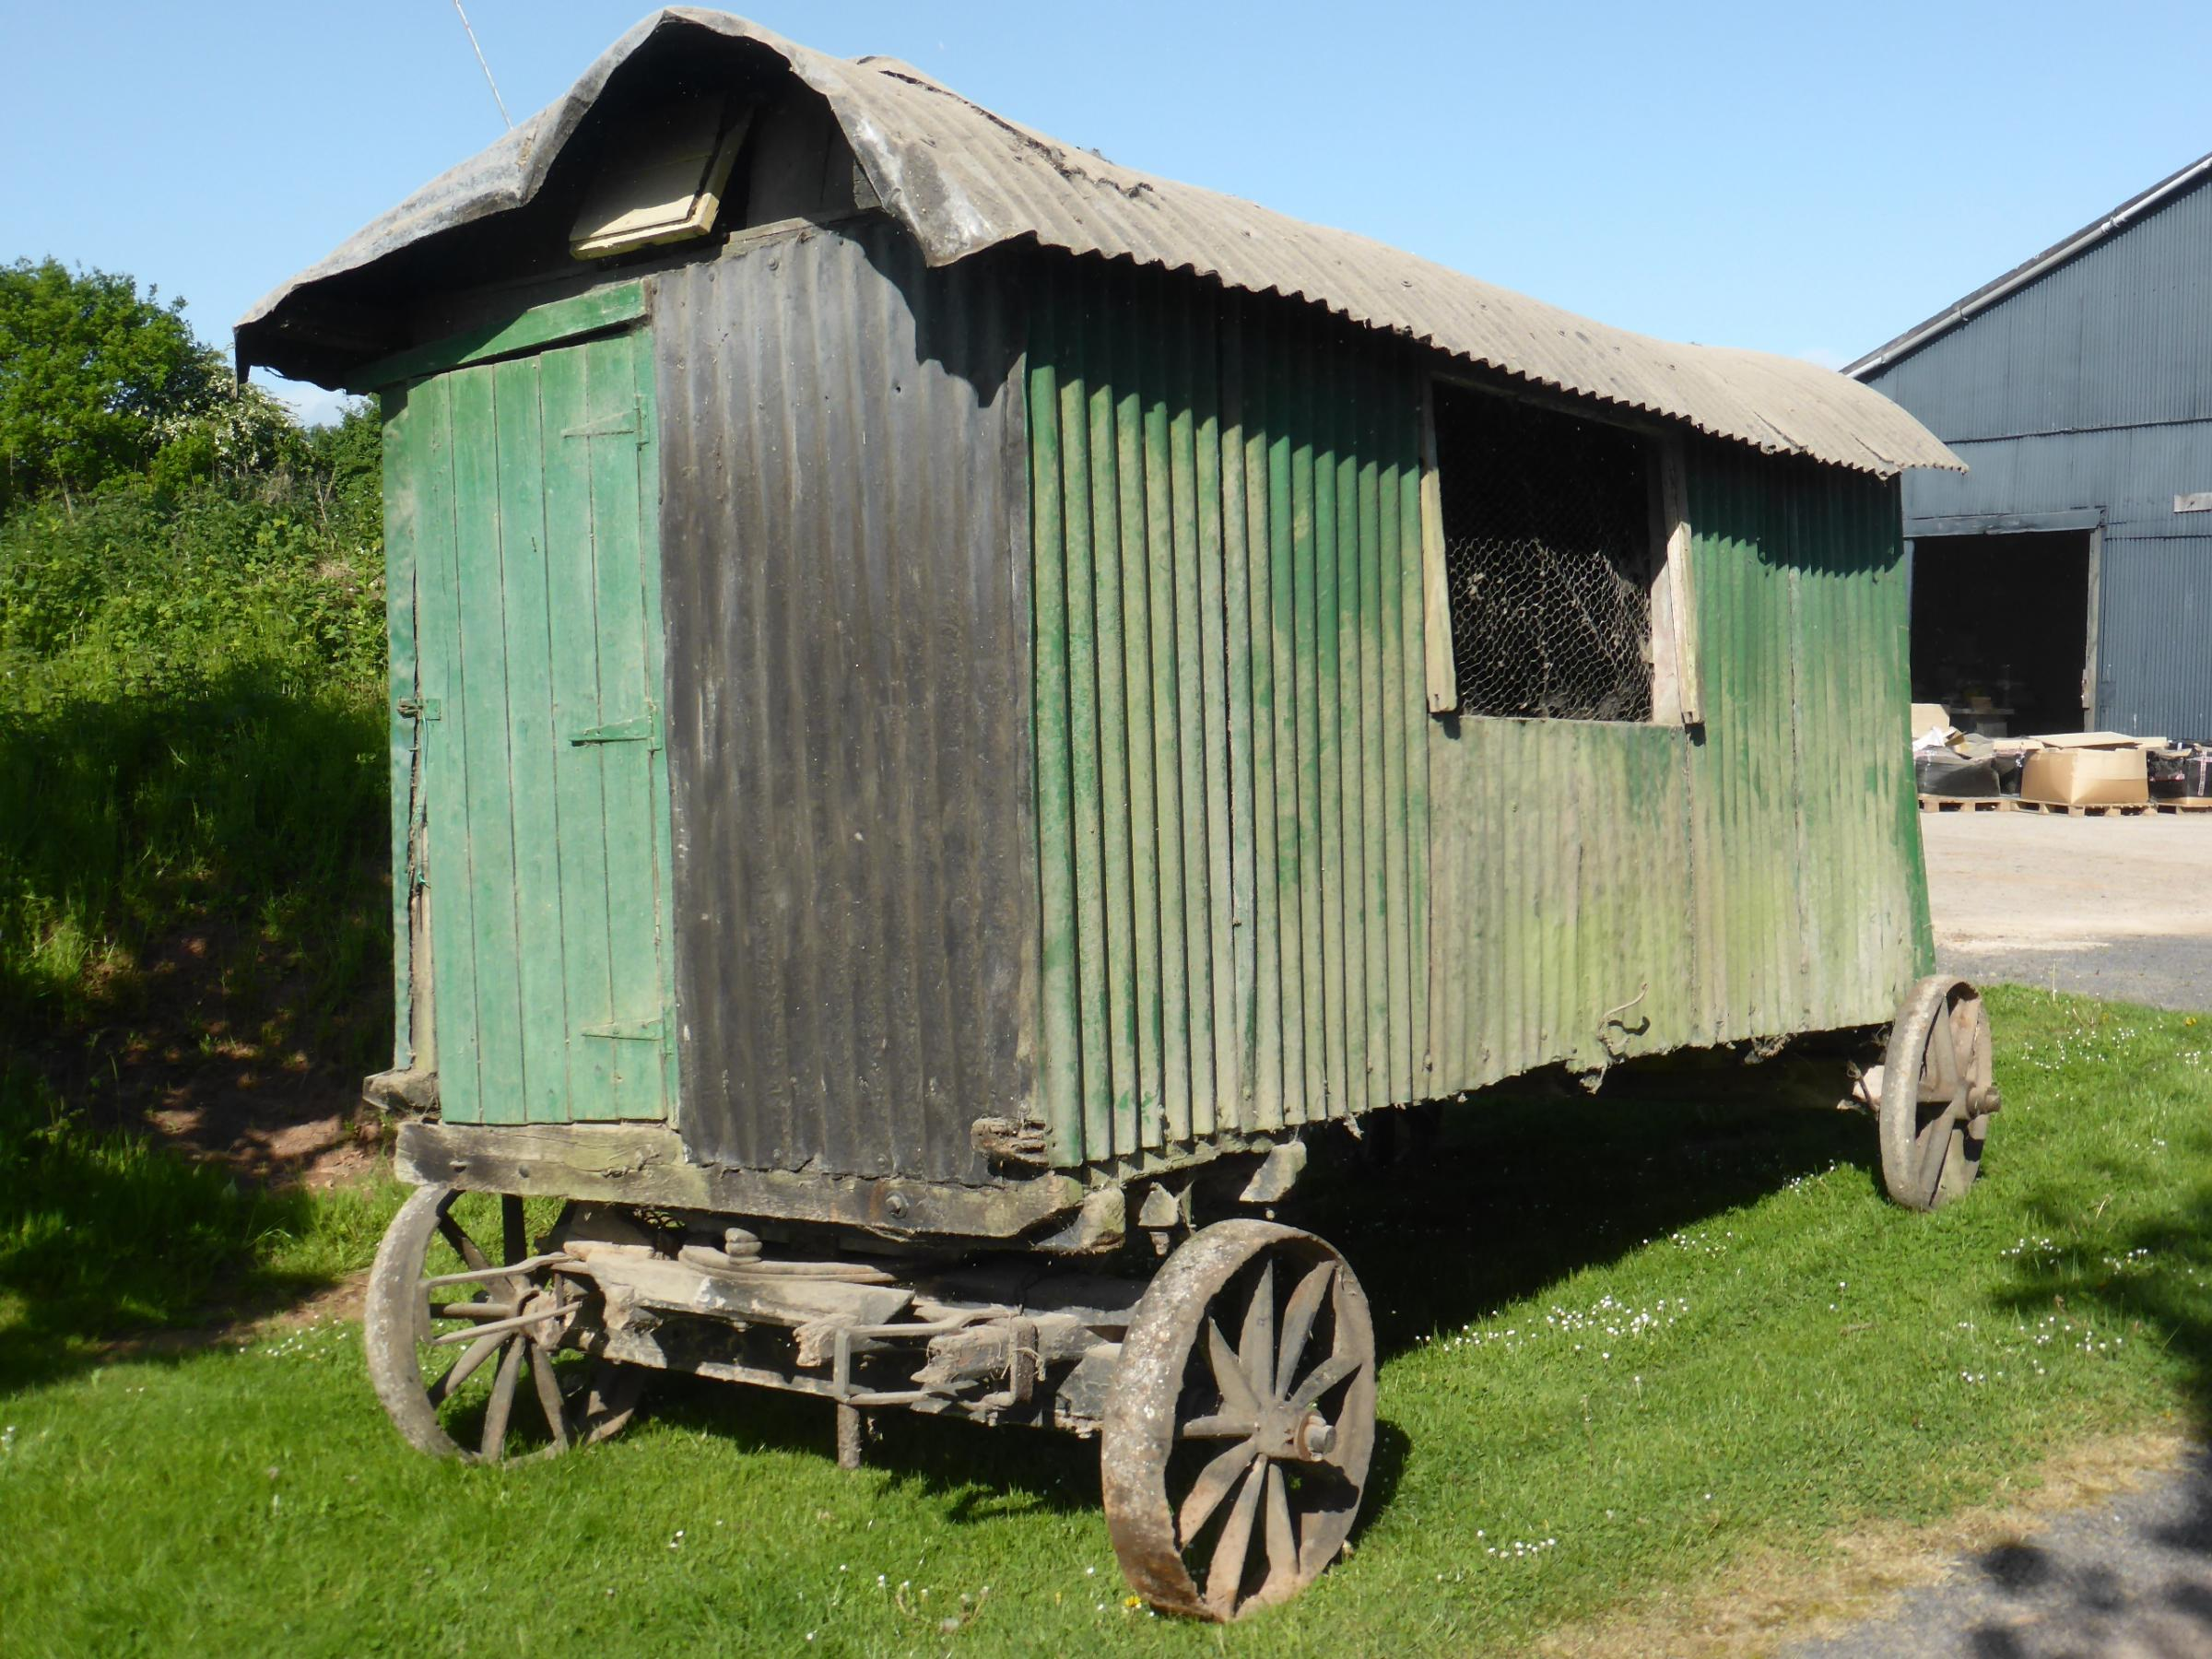 The 19th century shepherd's hut which is thought to have once housed a lion.